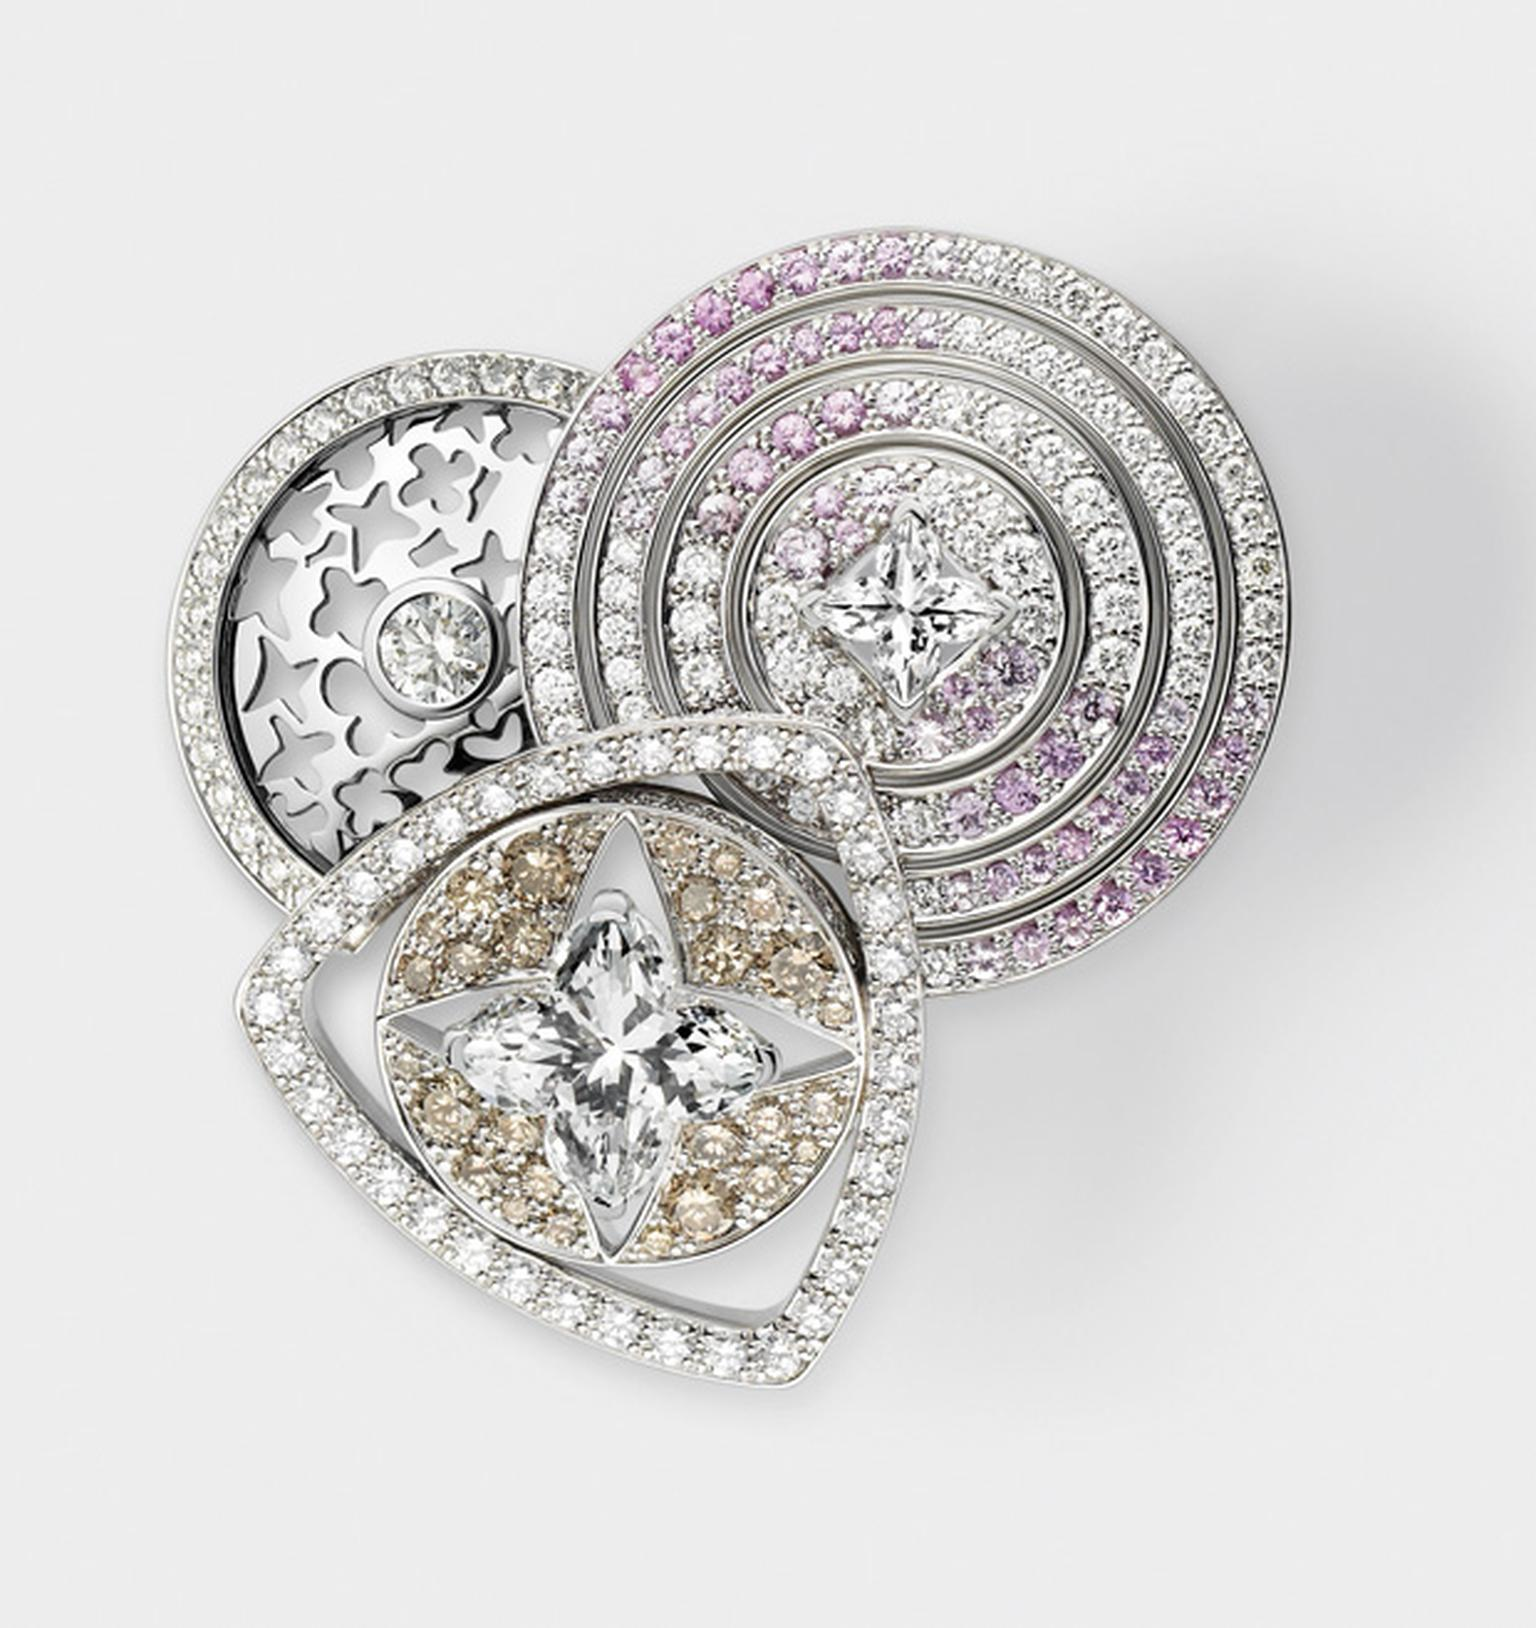 Louis Vuitton L'Ame du Voyage diamond ring